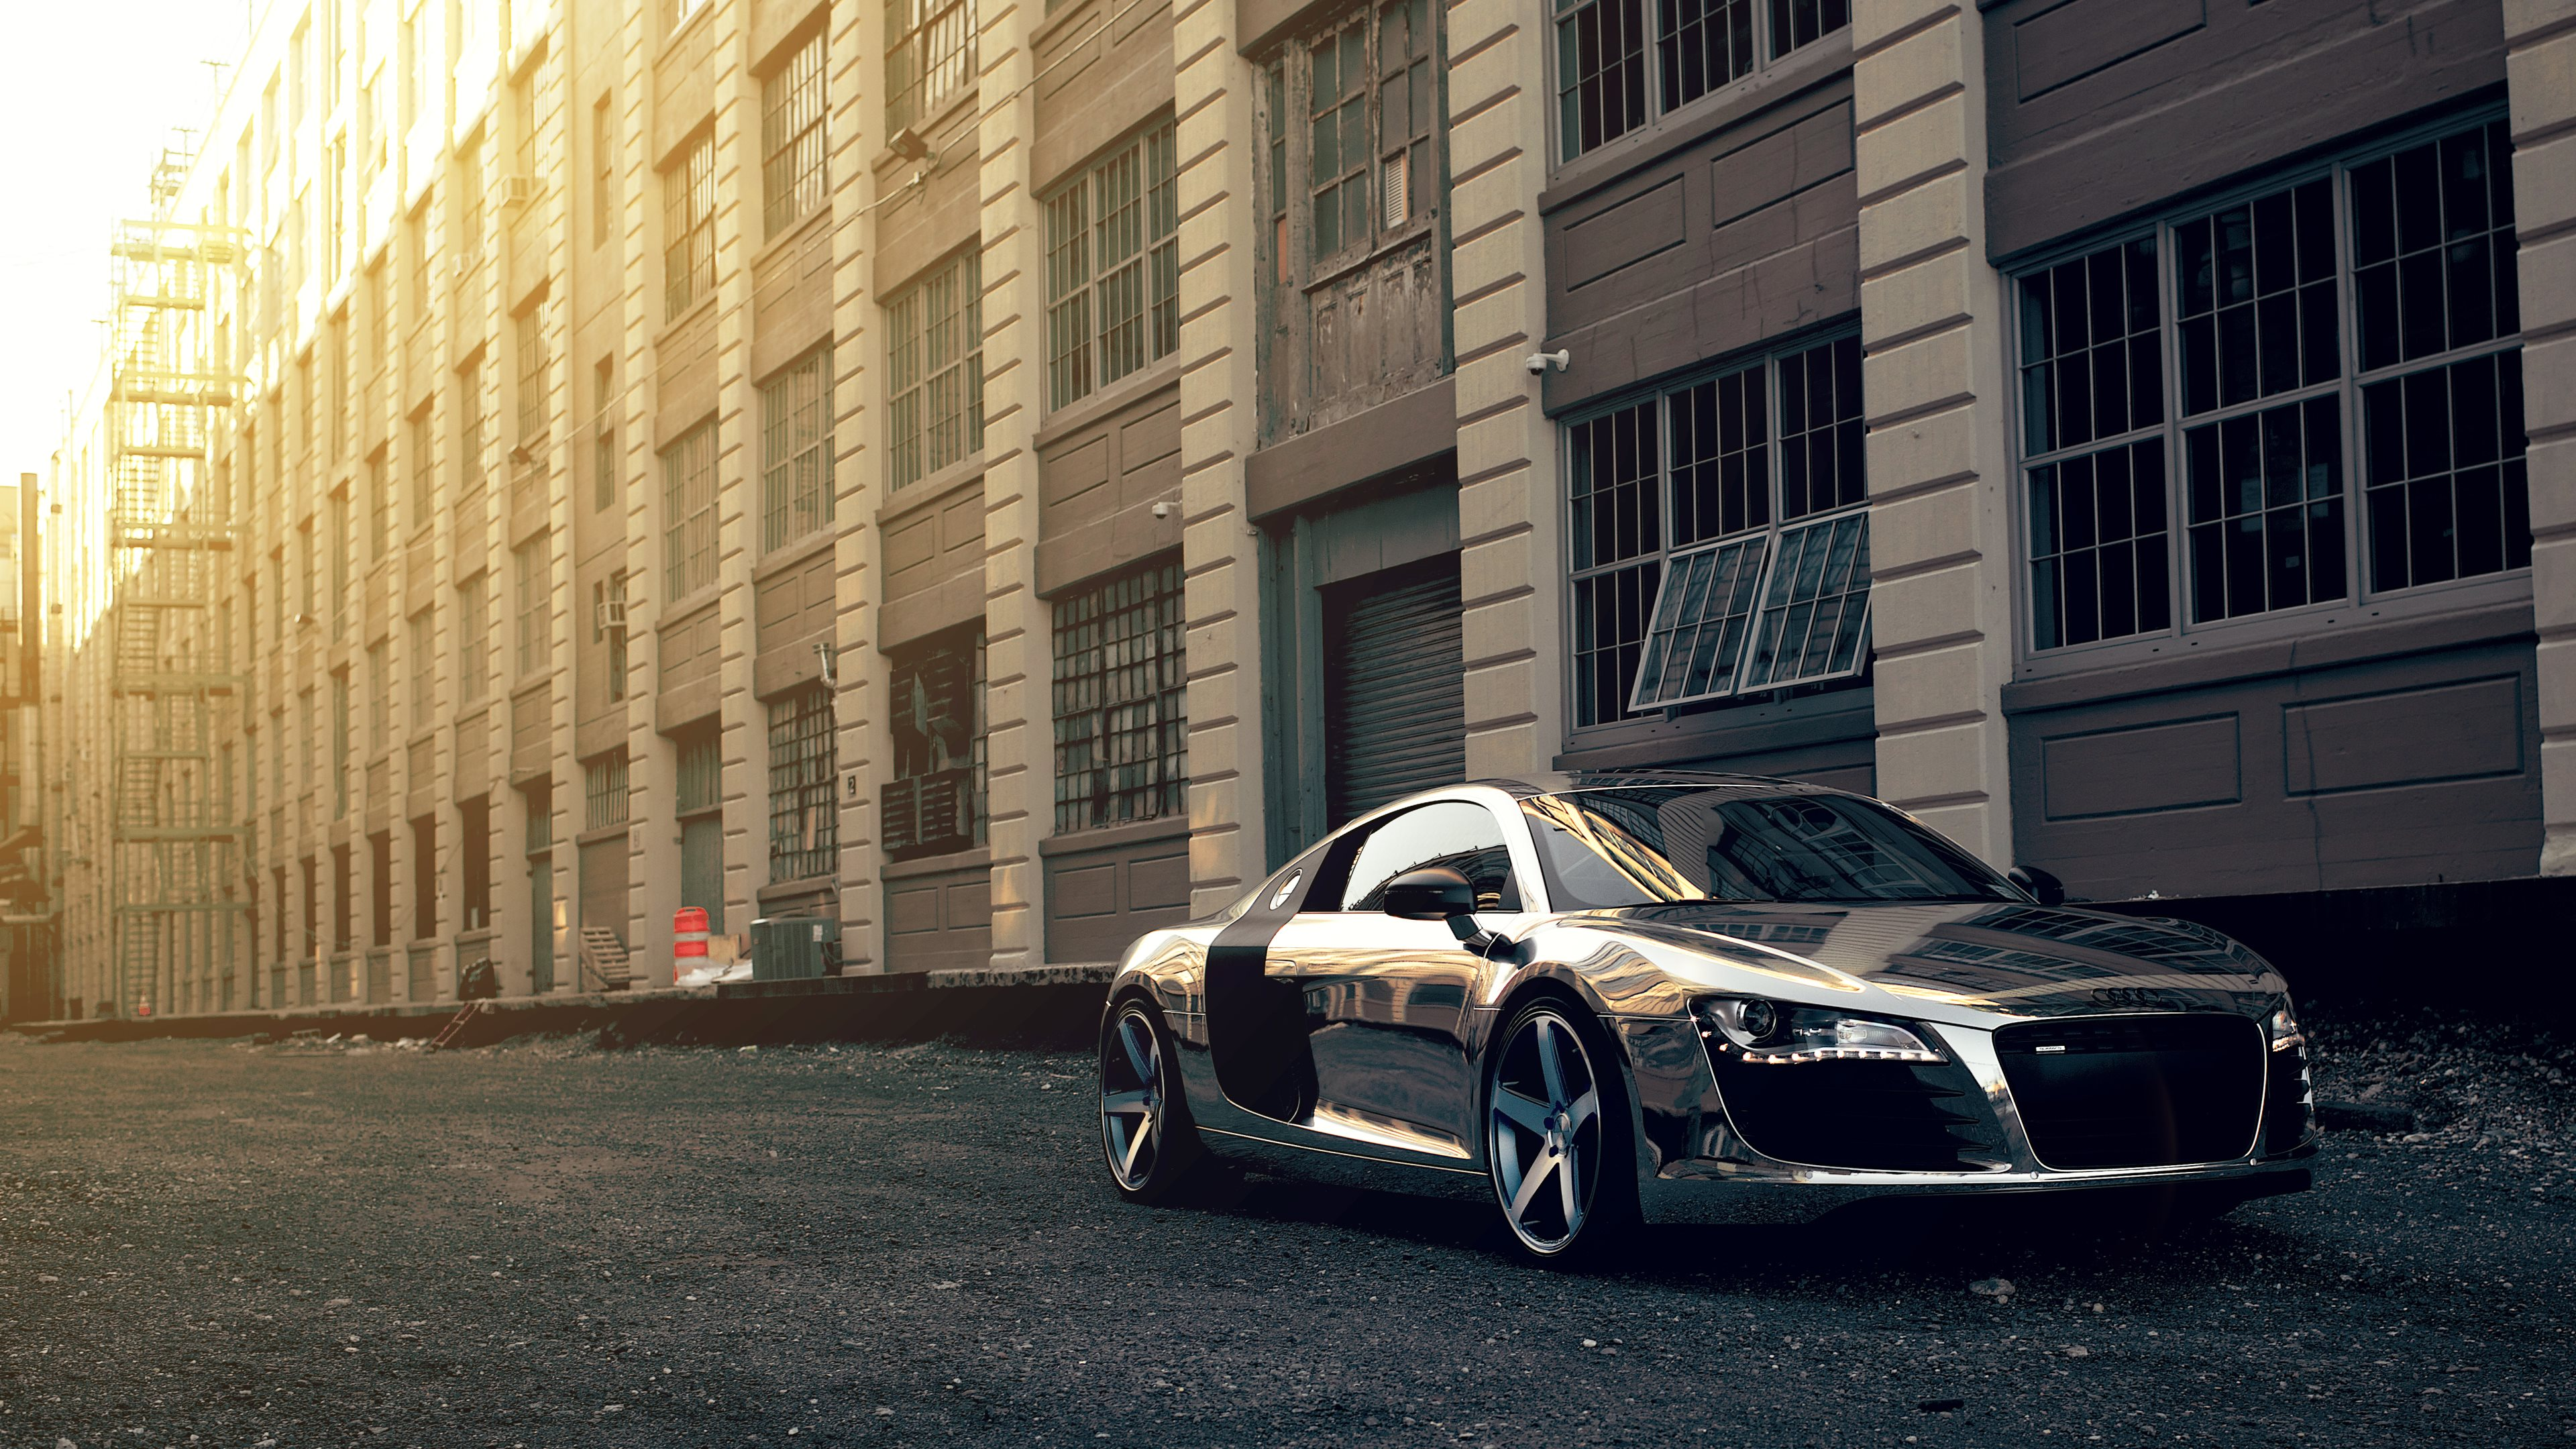 4K Desktop Wallpaper Cars audi r8 ultra hd pic   JohnyWheels 3840x2160